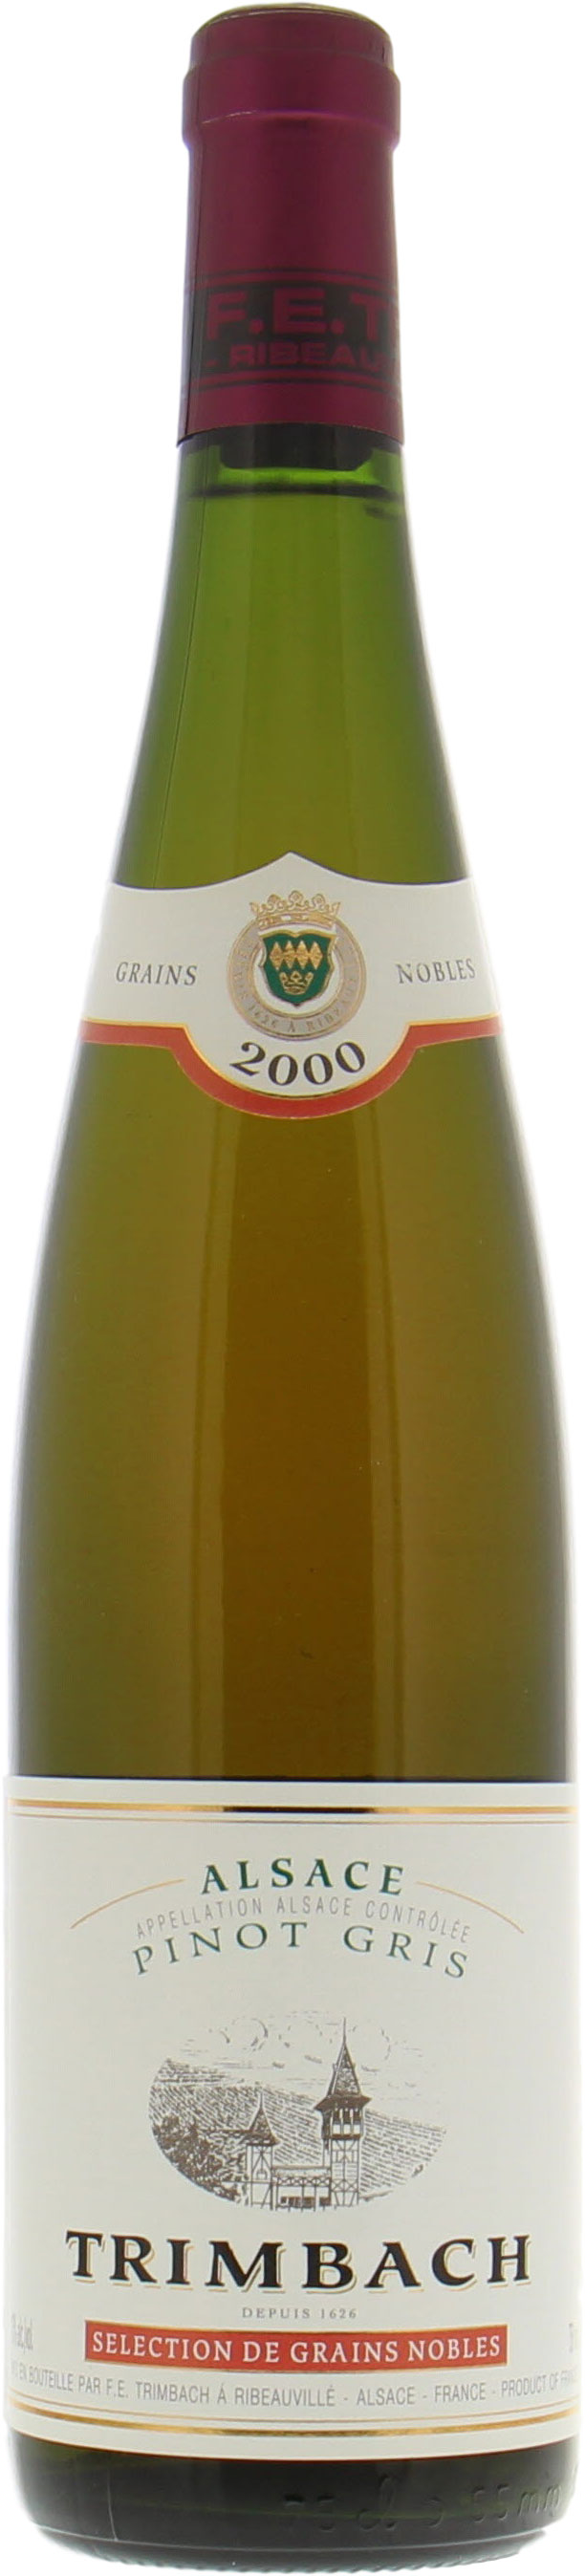 Trimbach - Pinot Gris Grains Nobles 2000